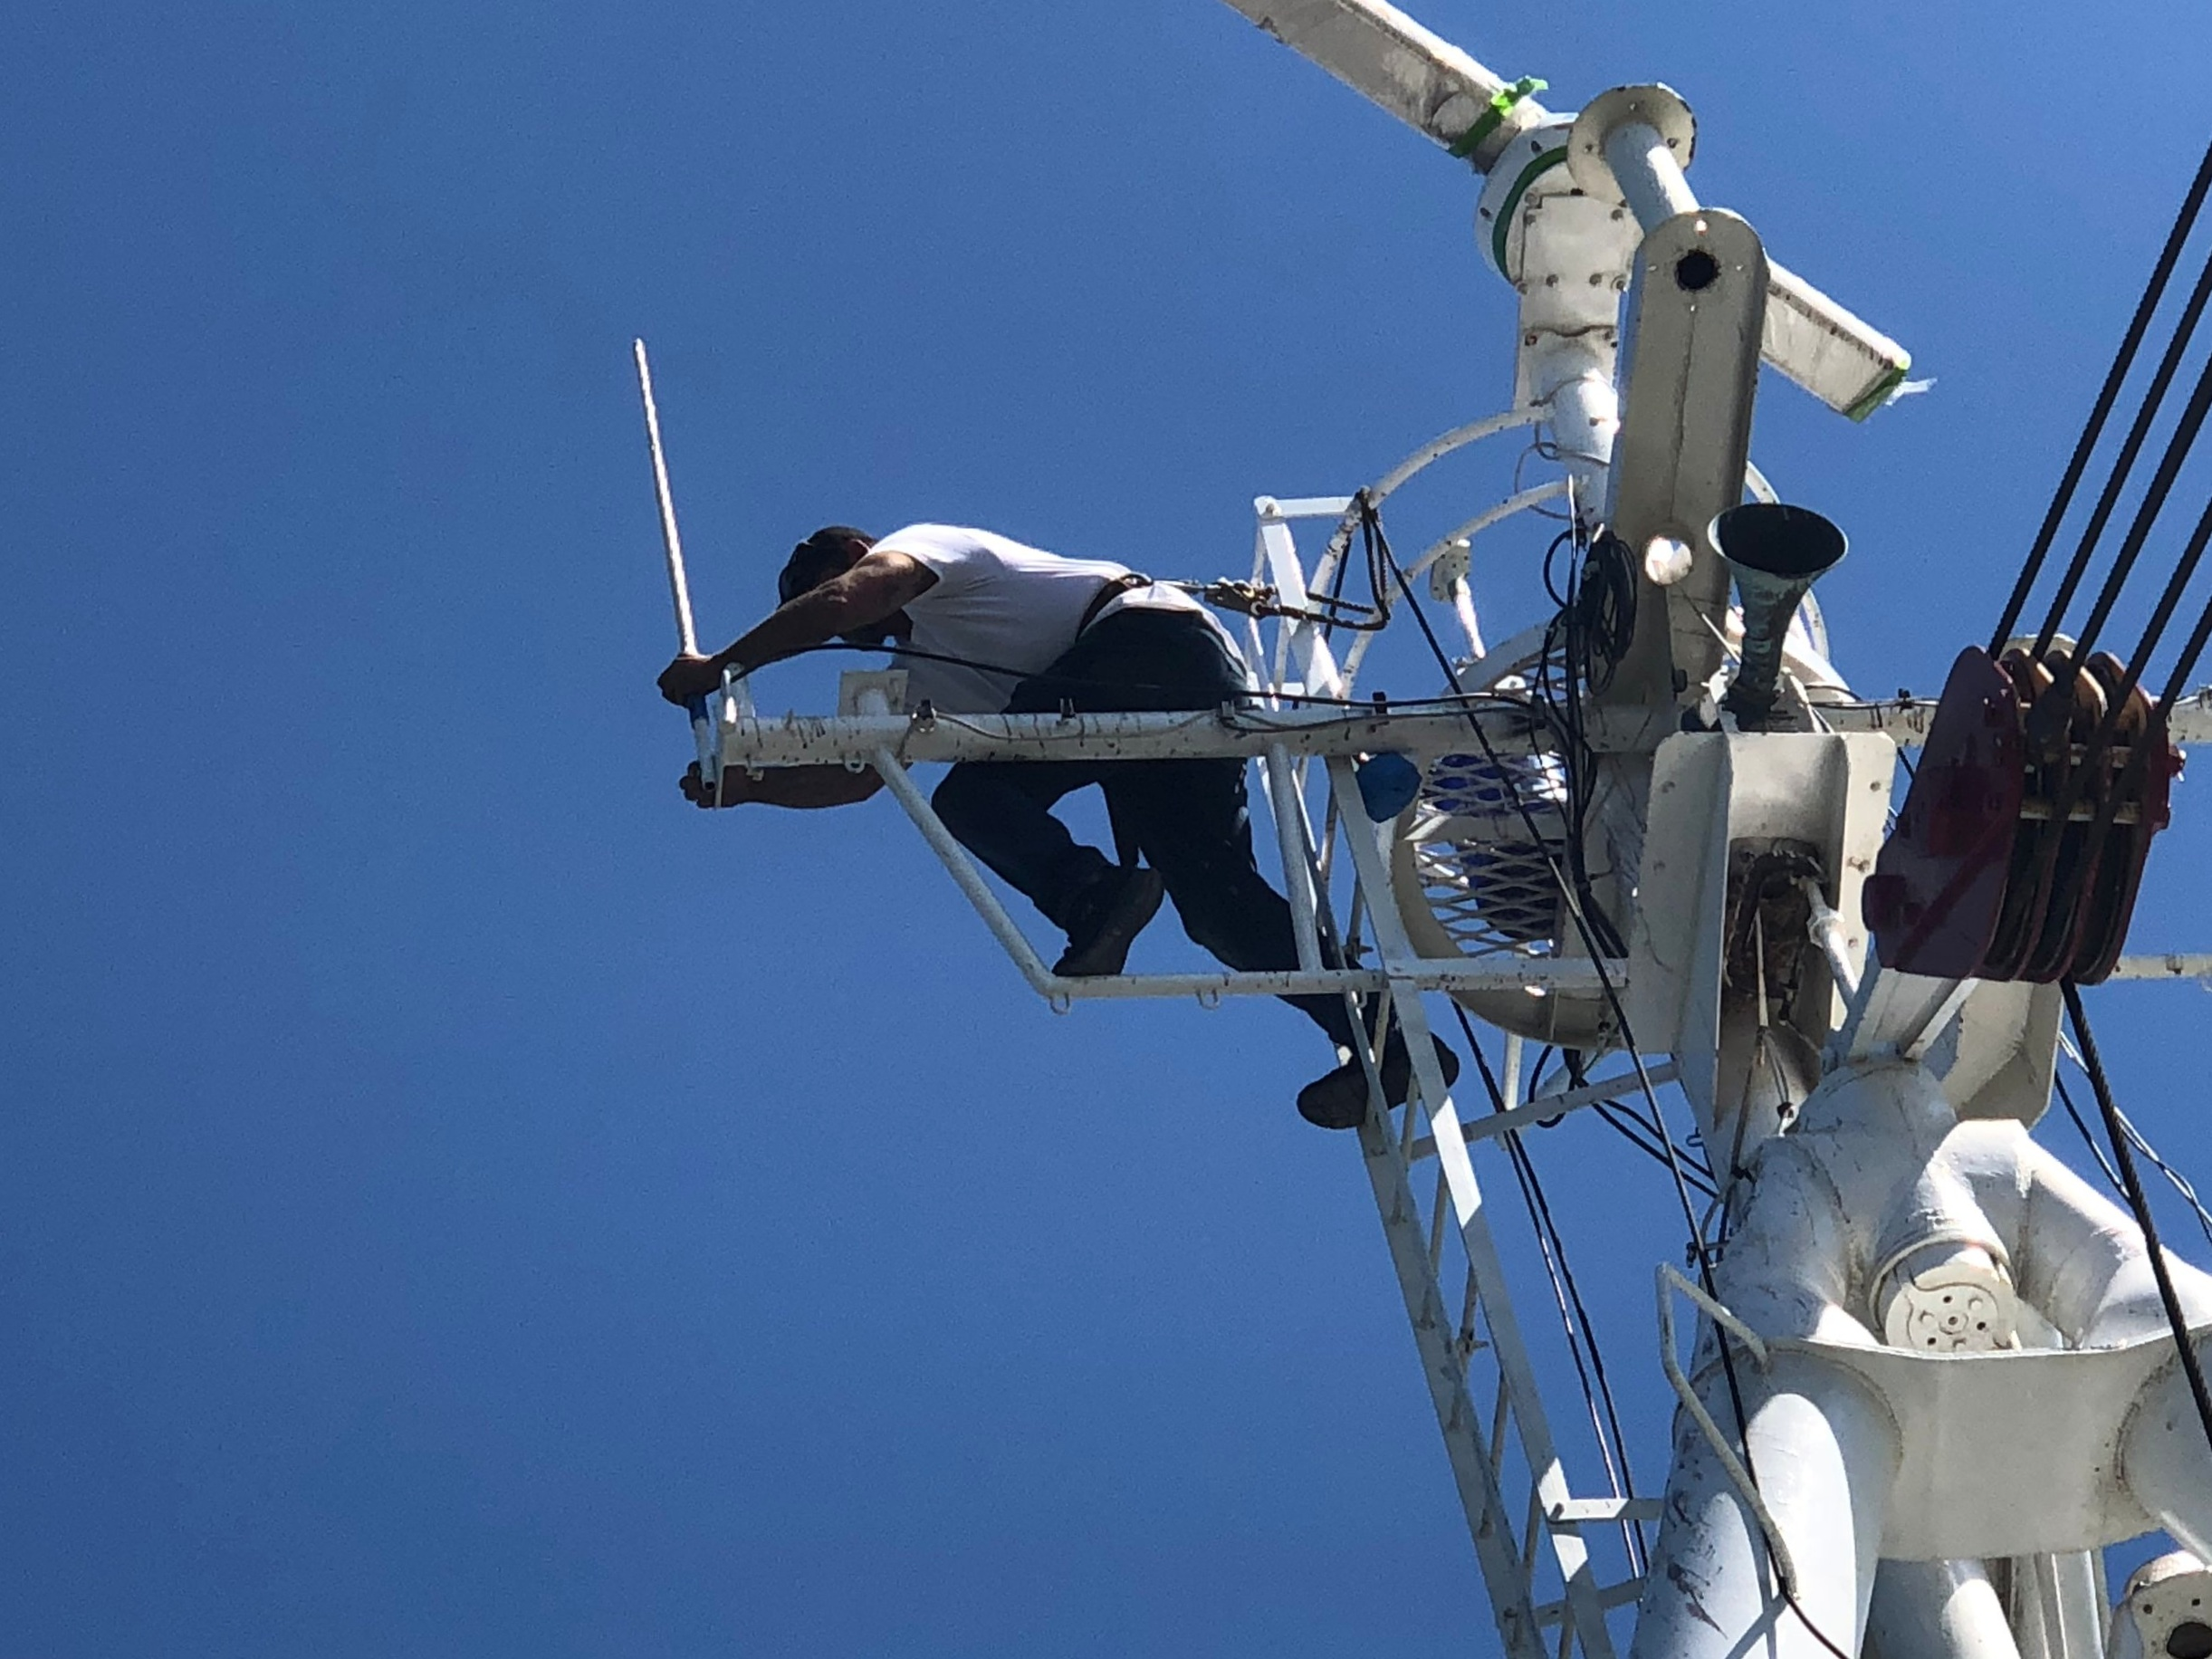 Joe installs one of the Shakespeare 6396 antennas.